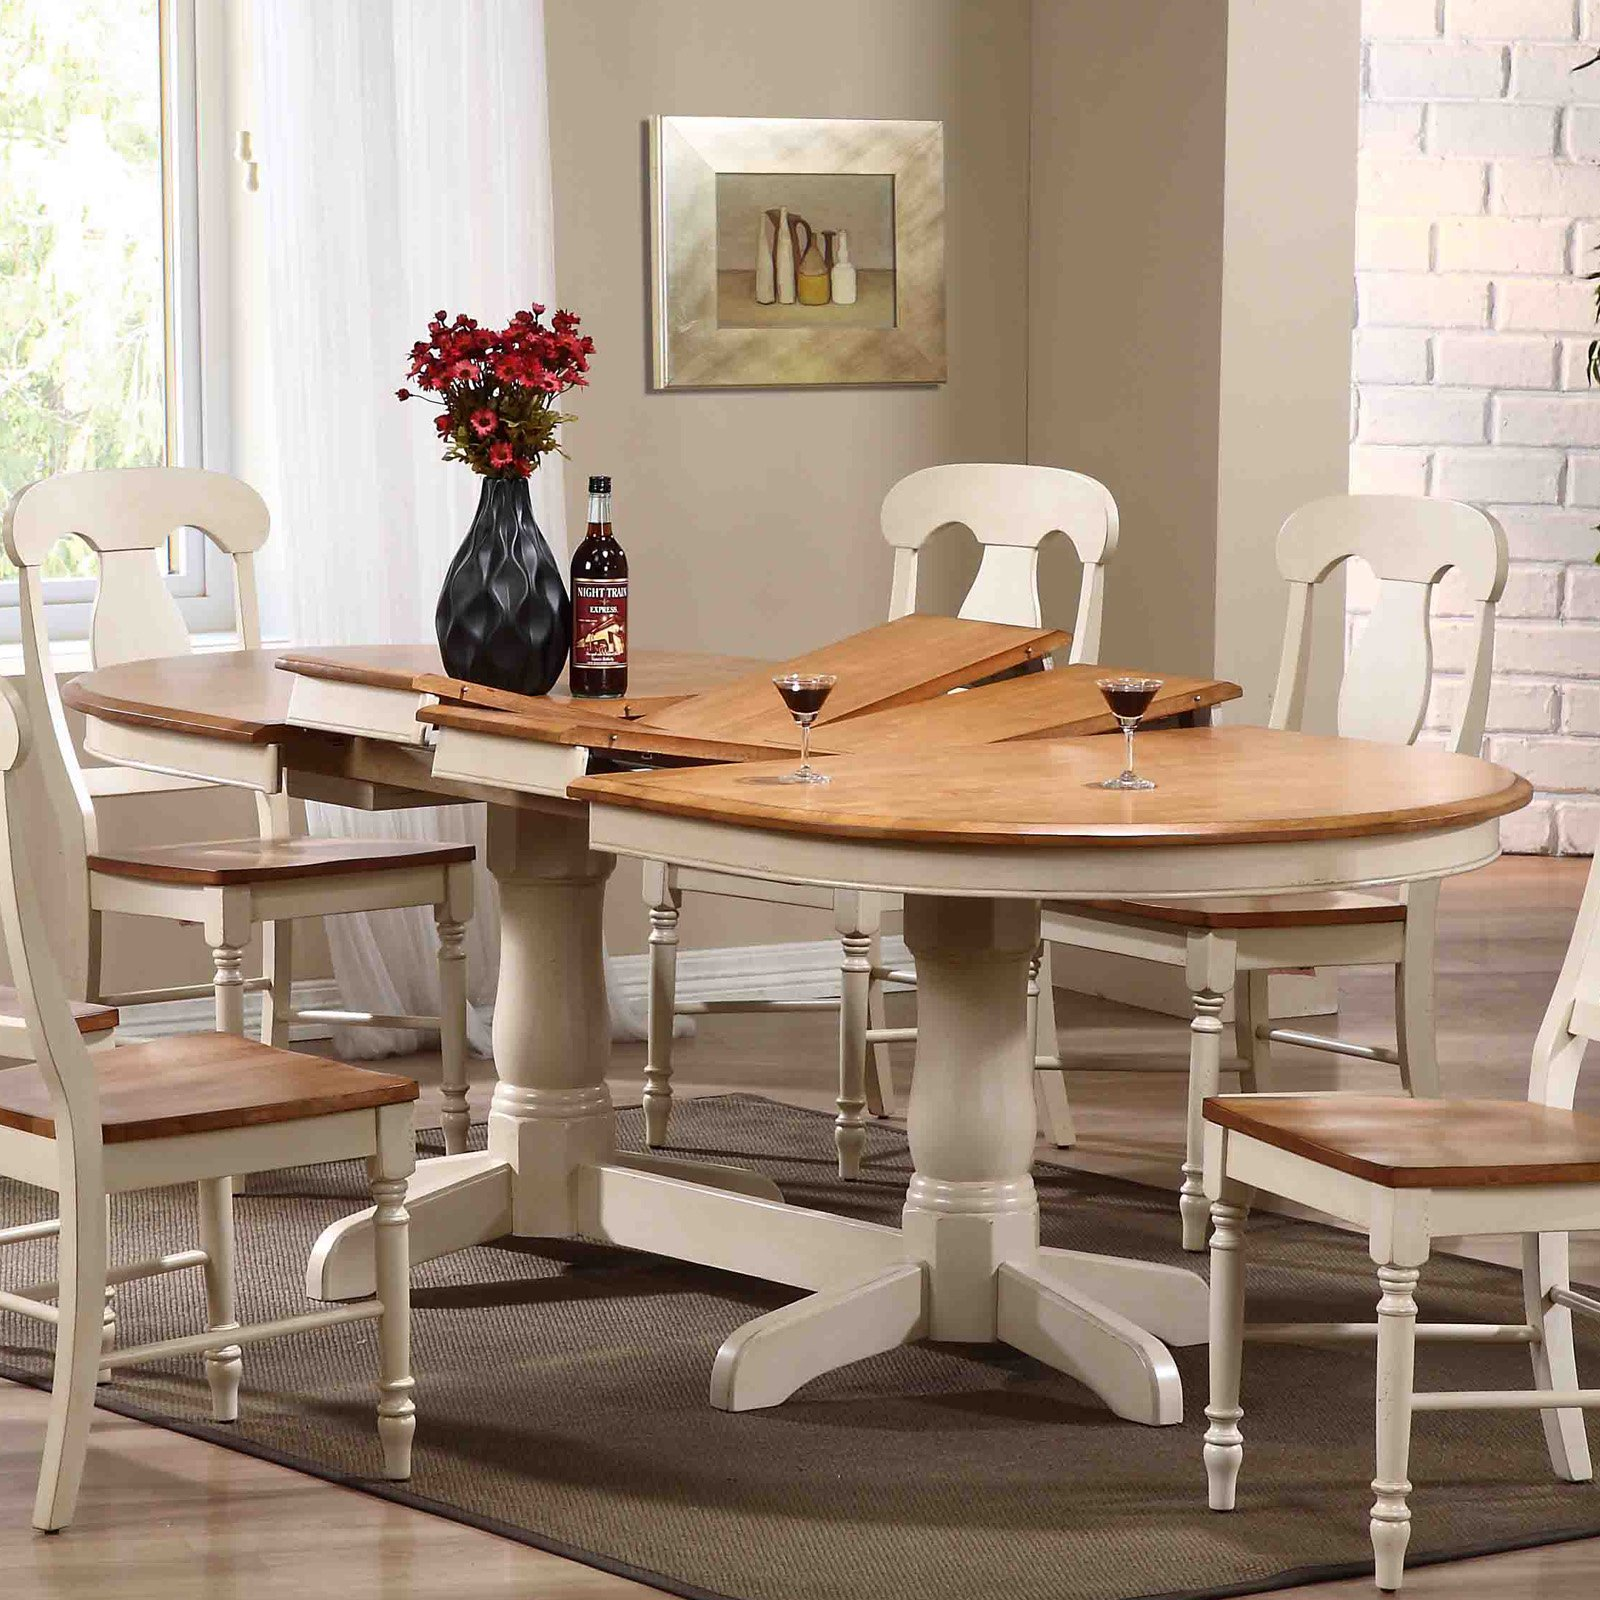 Iconic Furniture Oval Pedestal Dining Table